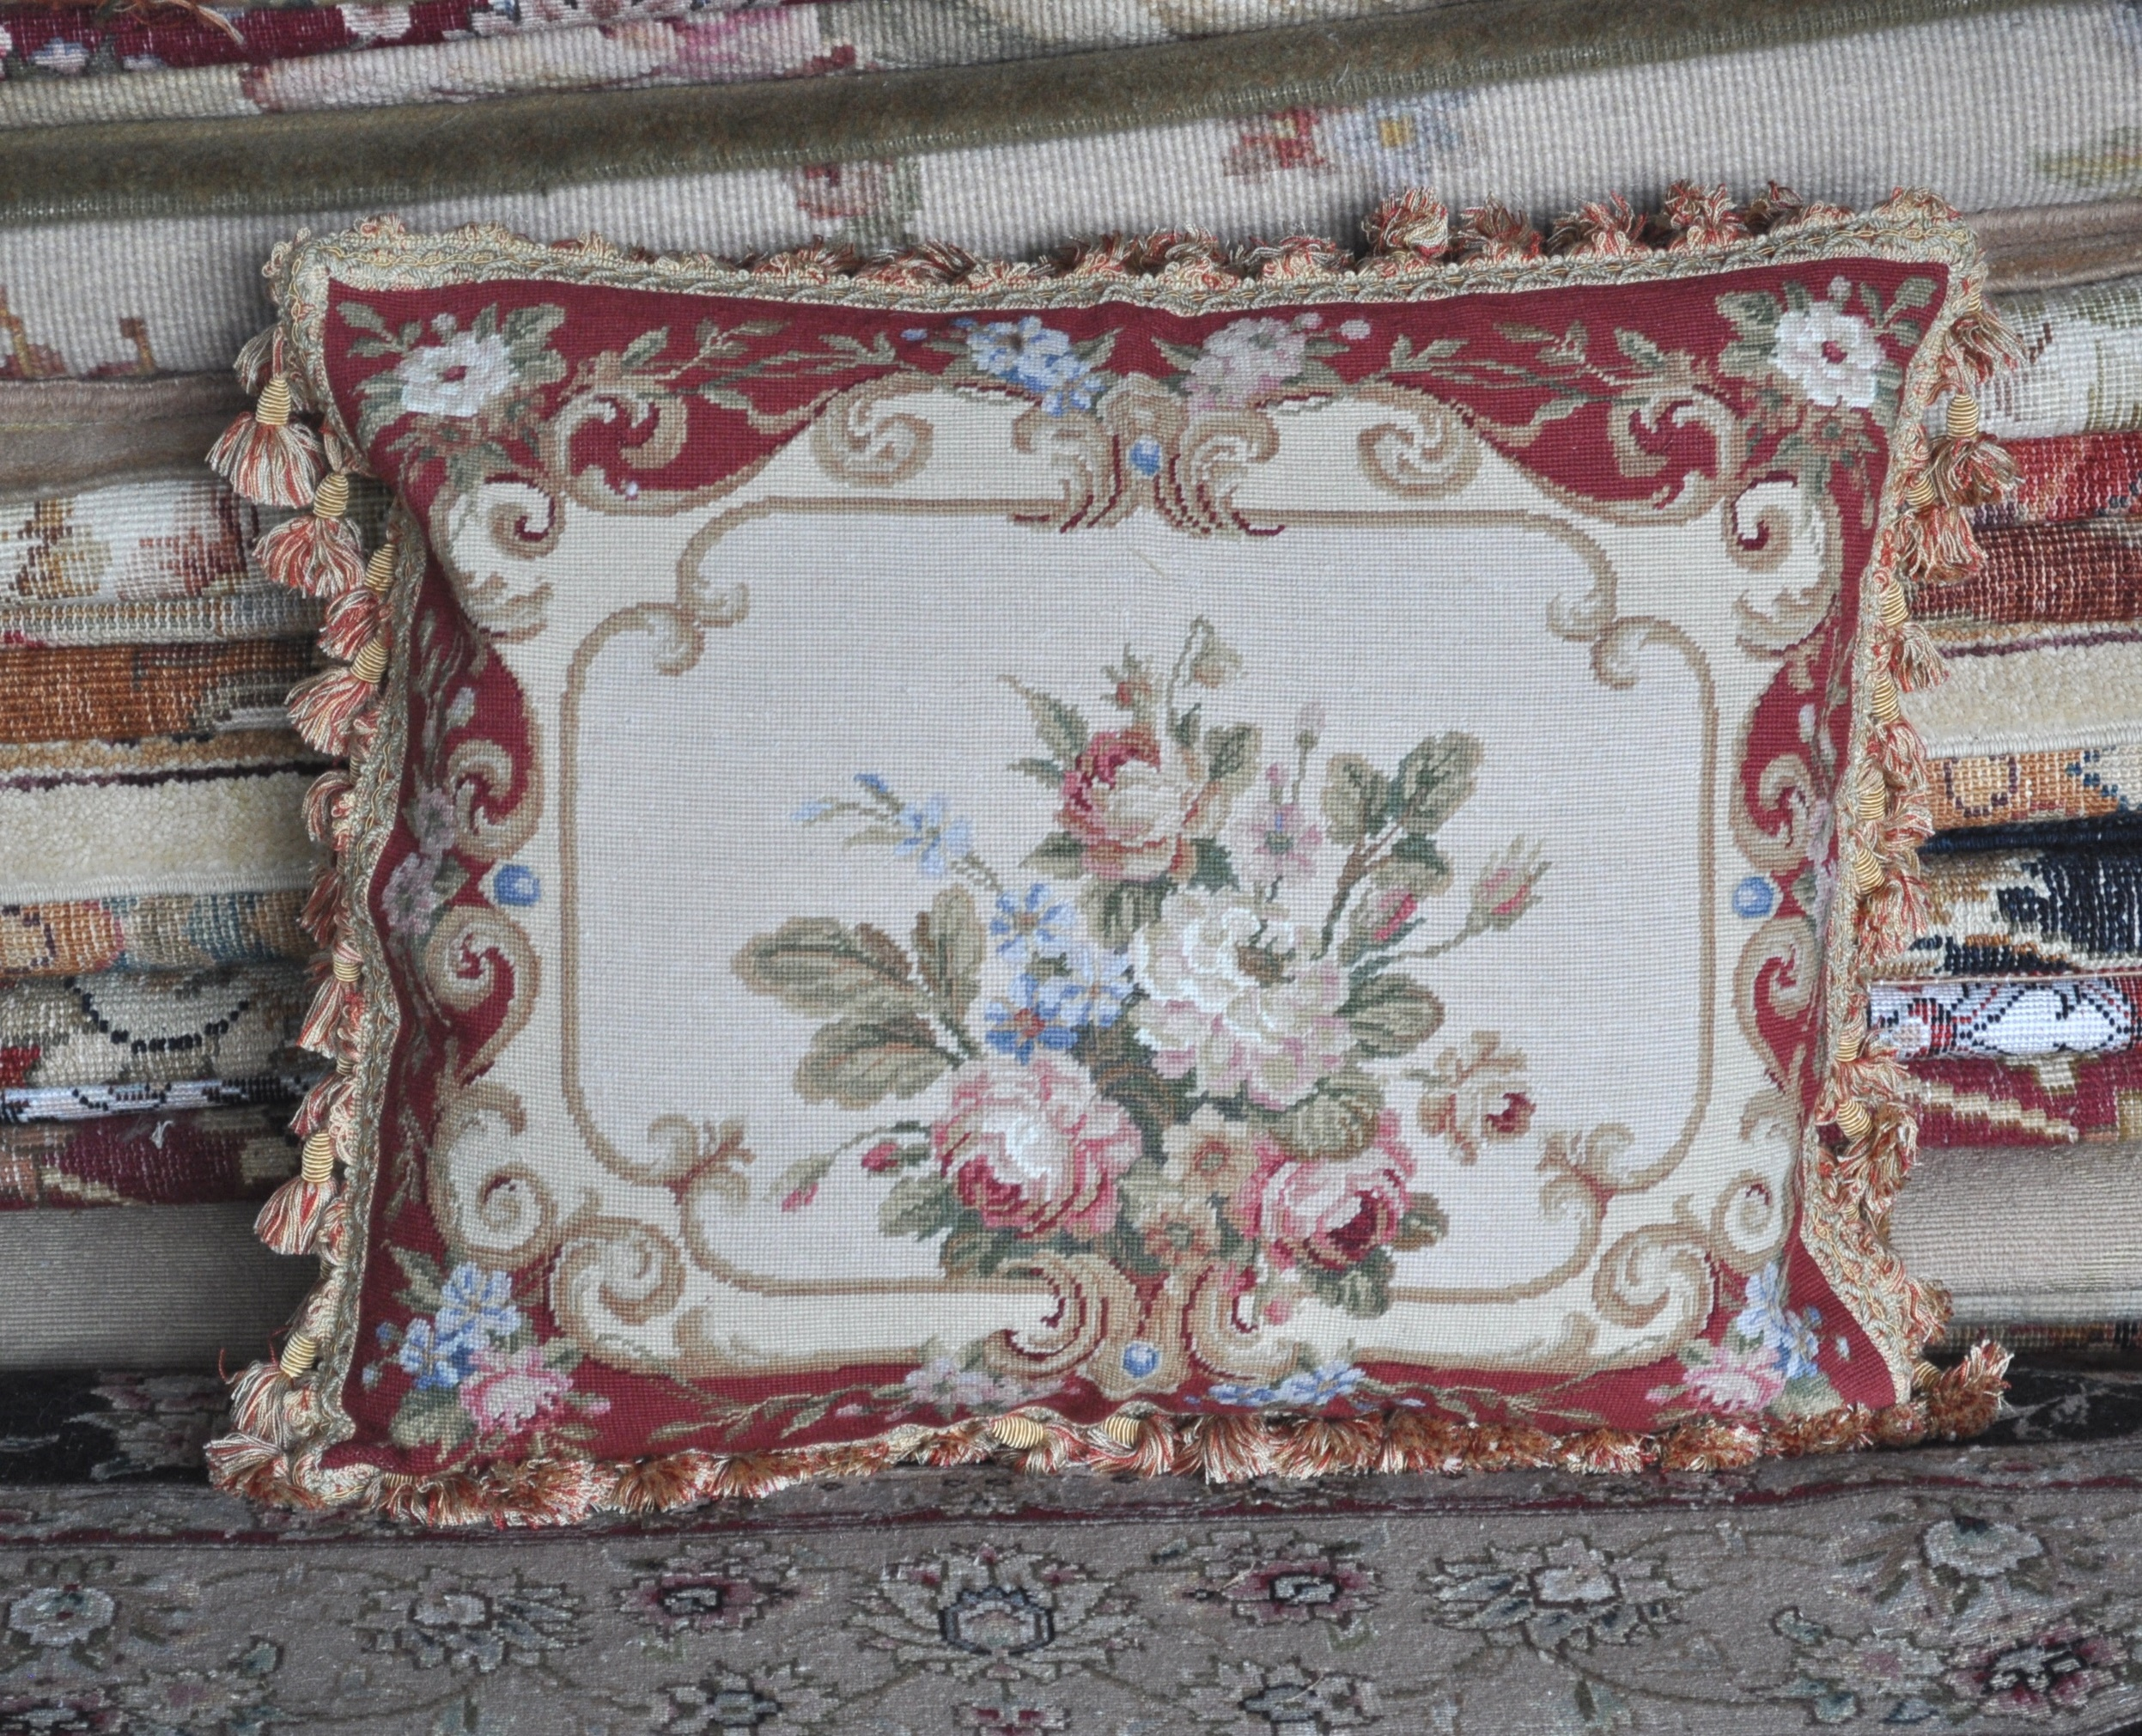 16″x20″ Needlepoint Pillow Cover 12980120